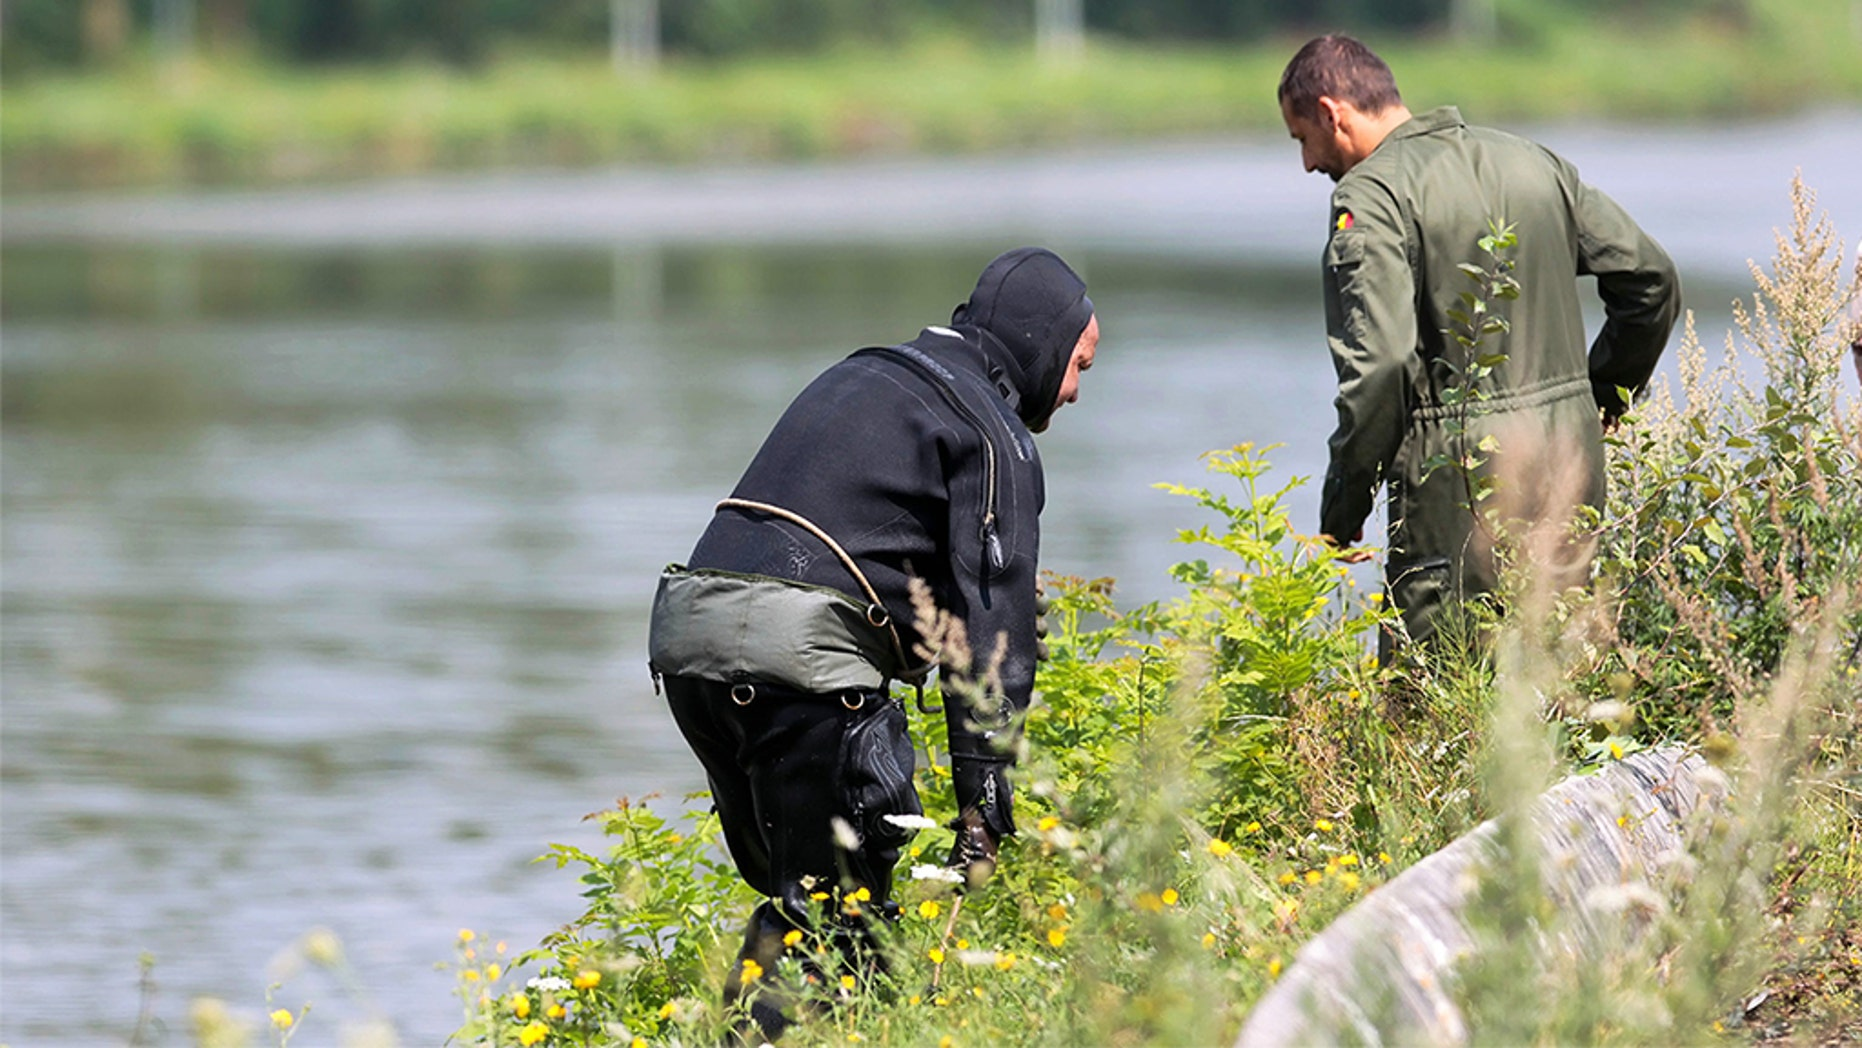 """A diver gets out of the canal in Ronquieres, some 30 kms south of Brussels on August 3, 2010 during a search for evidence in the """"Brabant's killers"""" (Tueurs du Brabant - Bende van Nijvel) case. This is the second search of the area since 1986, a few months after the last killings at the Delhaize supermarket in Aalst. Investigating police officers, divers from the army, DVI (victim identification cell) members and members of civilian protection were part of the search operation. (VIRGINIE LEFOUR/AFP/Getty Images)"""